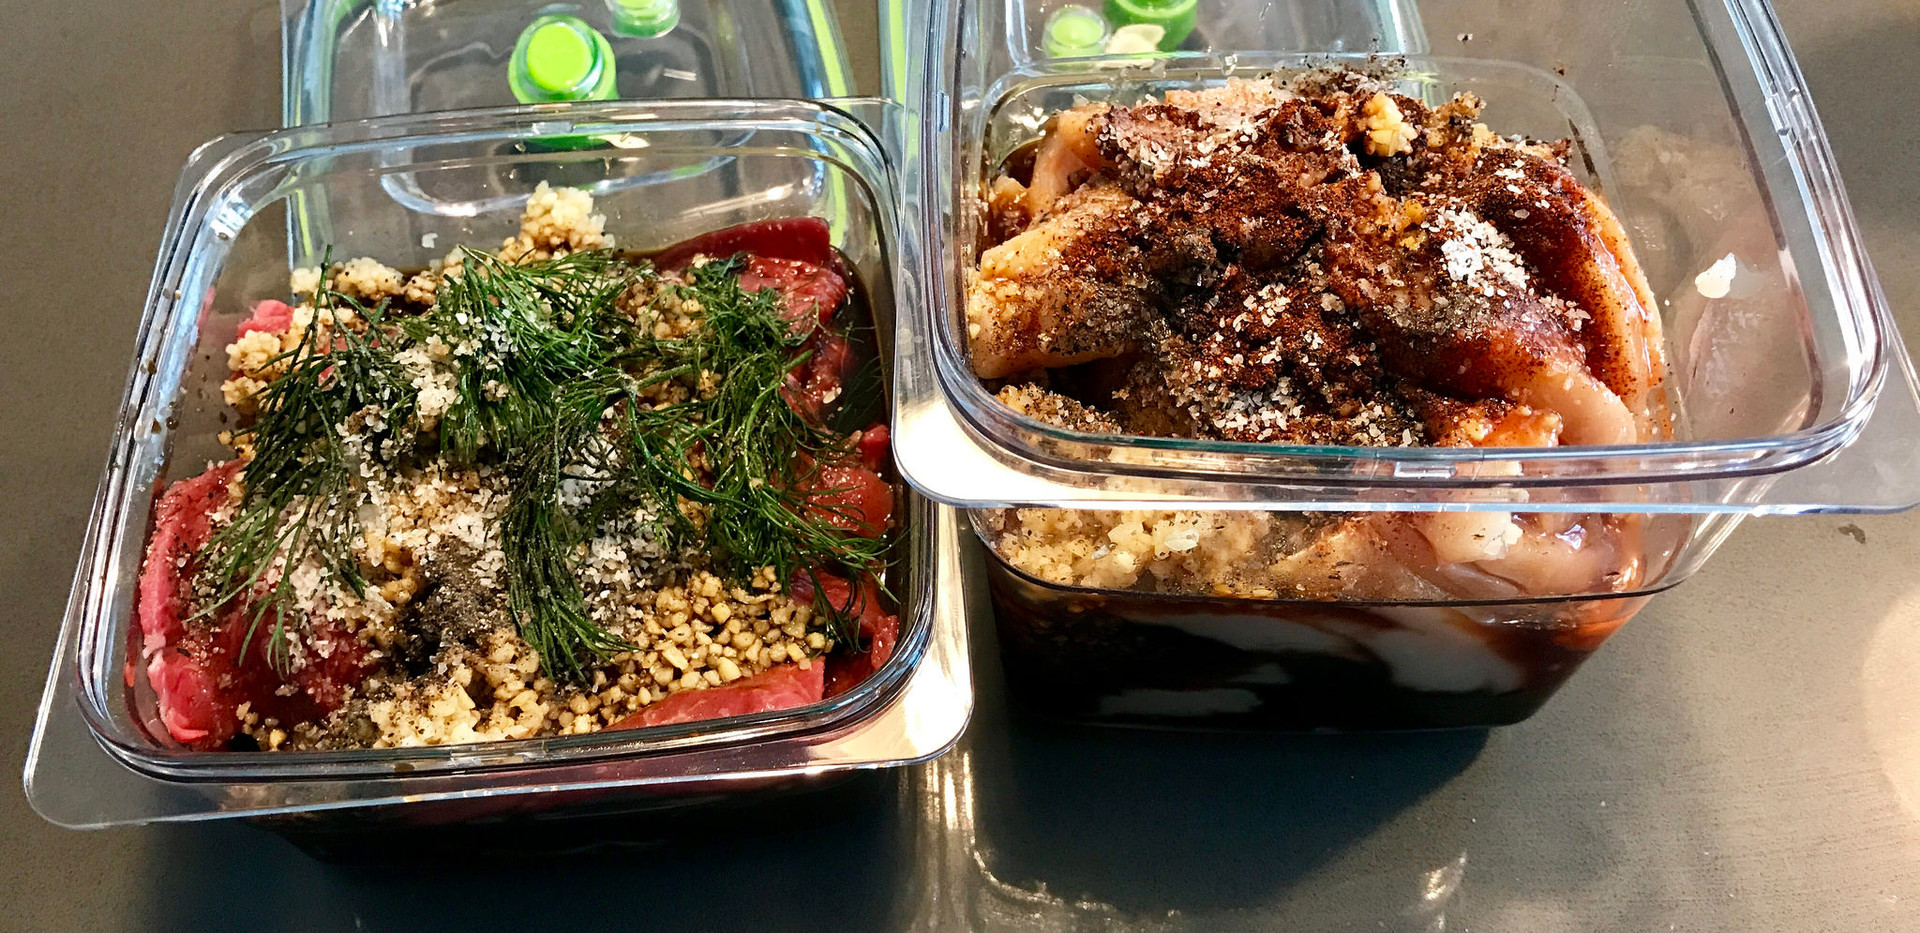 Marinated beef and chicken